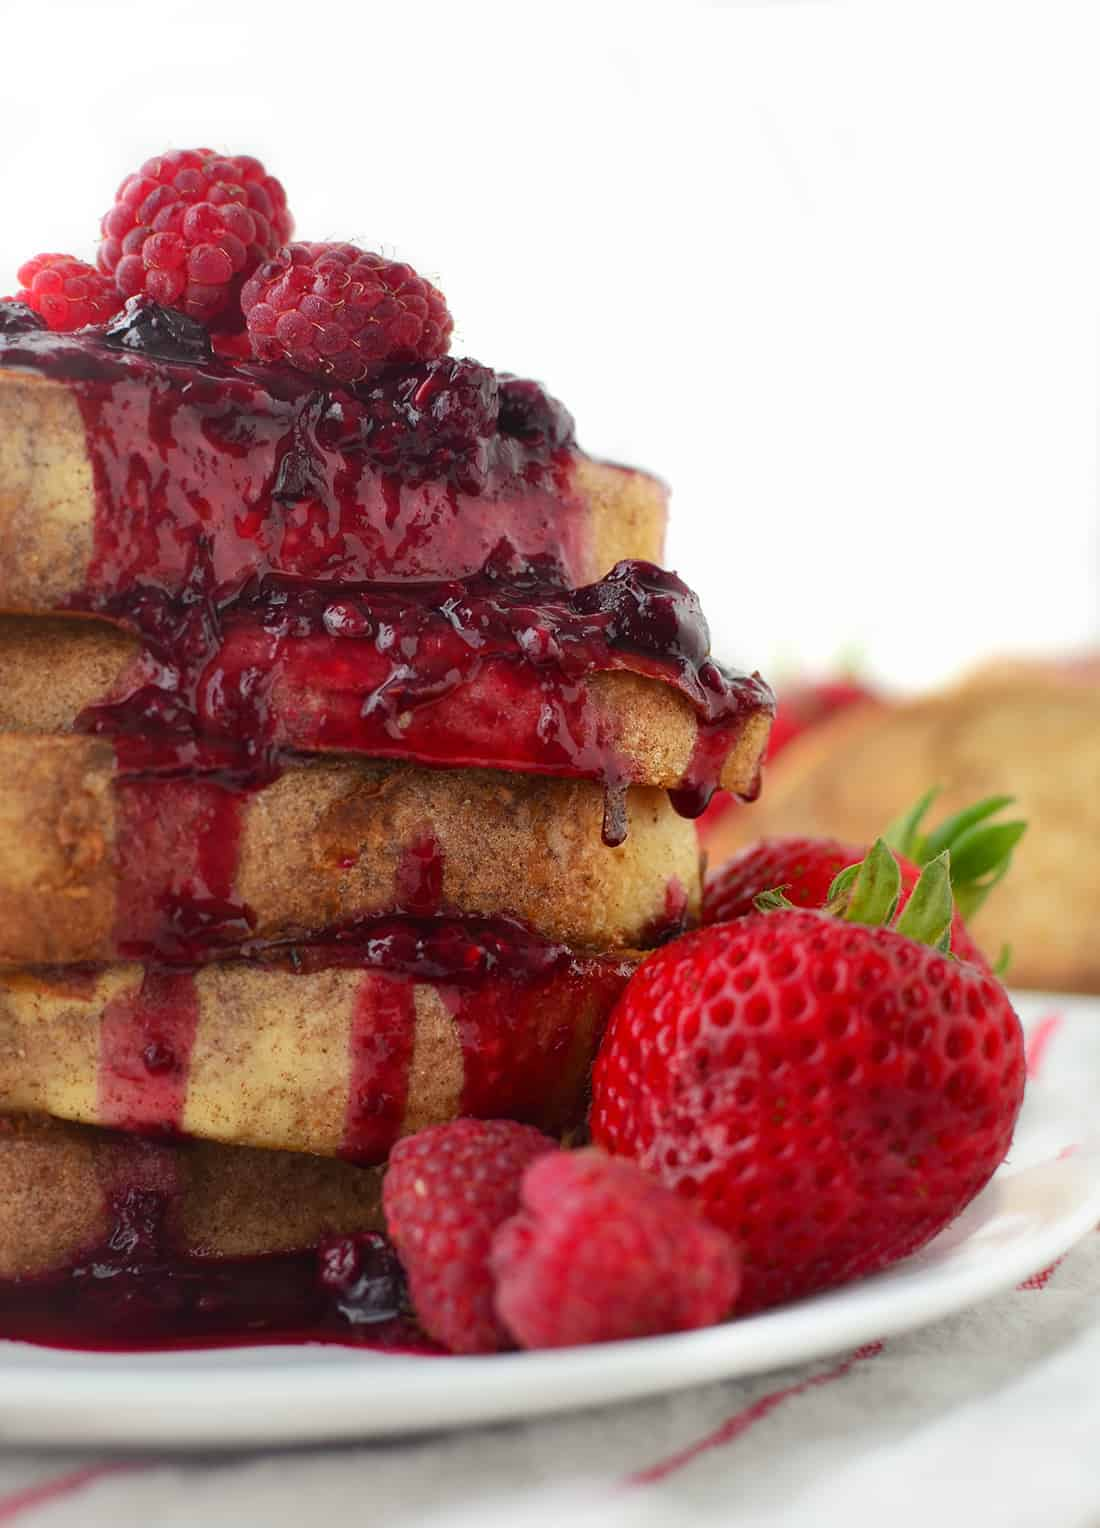 Triple Berry Syrup! The perfect topping for french toast, pancakes, ice cream and more! Low-sugar and packed with antioxidants. #vegan #vegetarian | www.delishknowledge.com